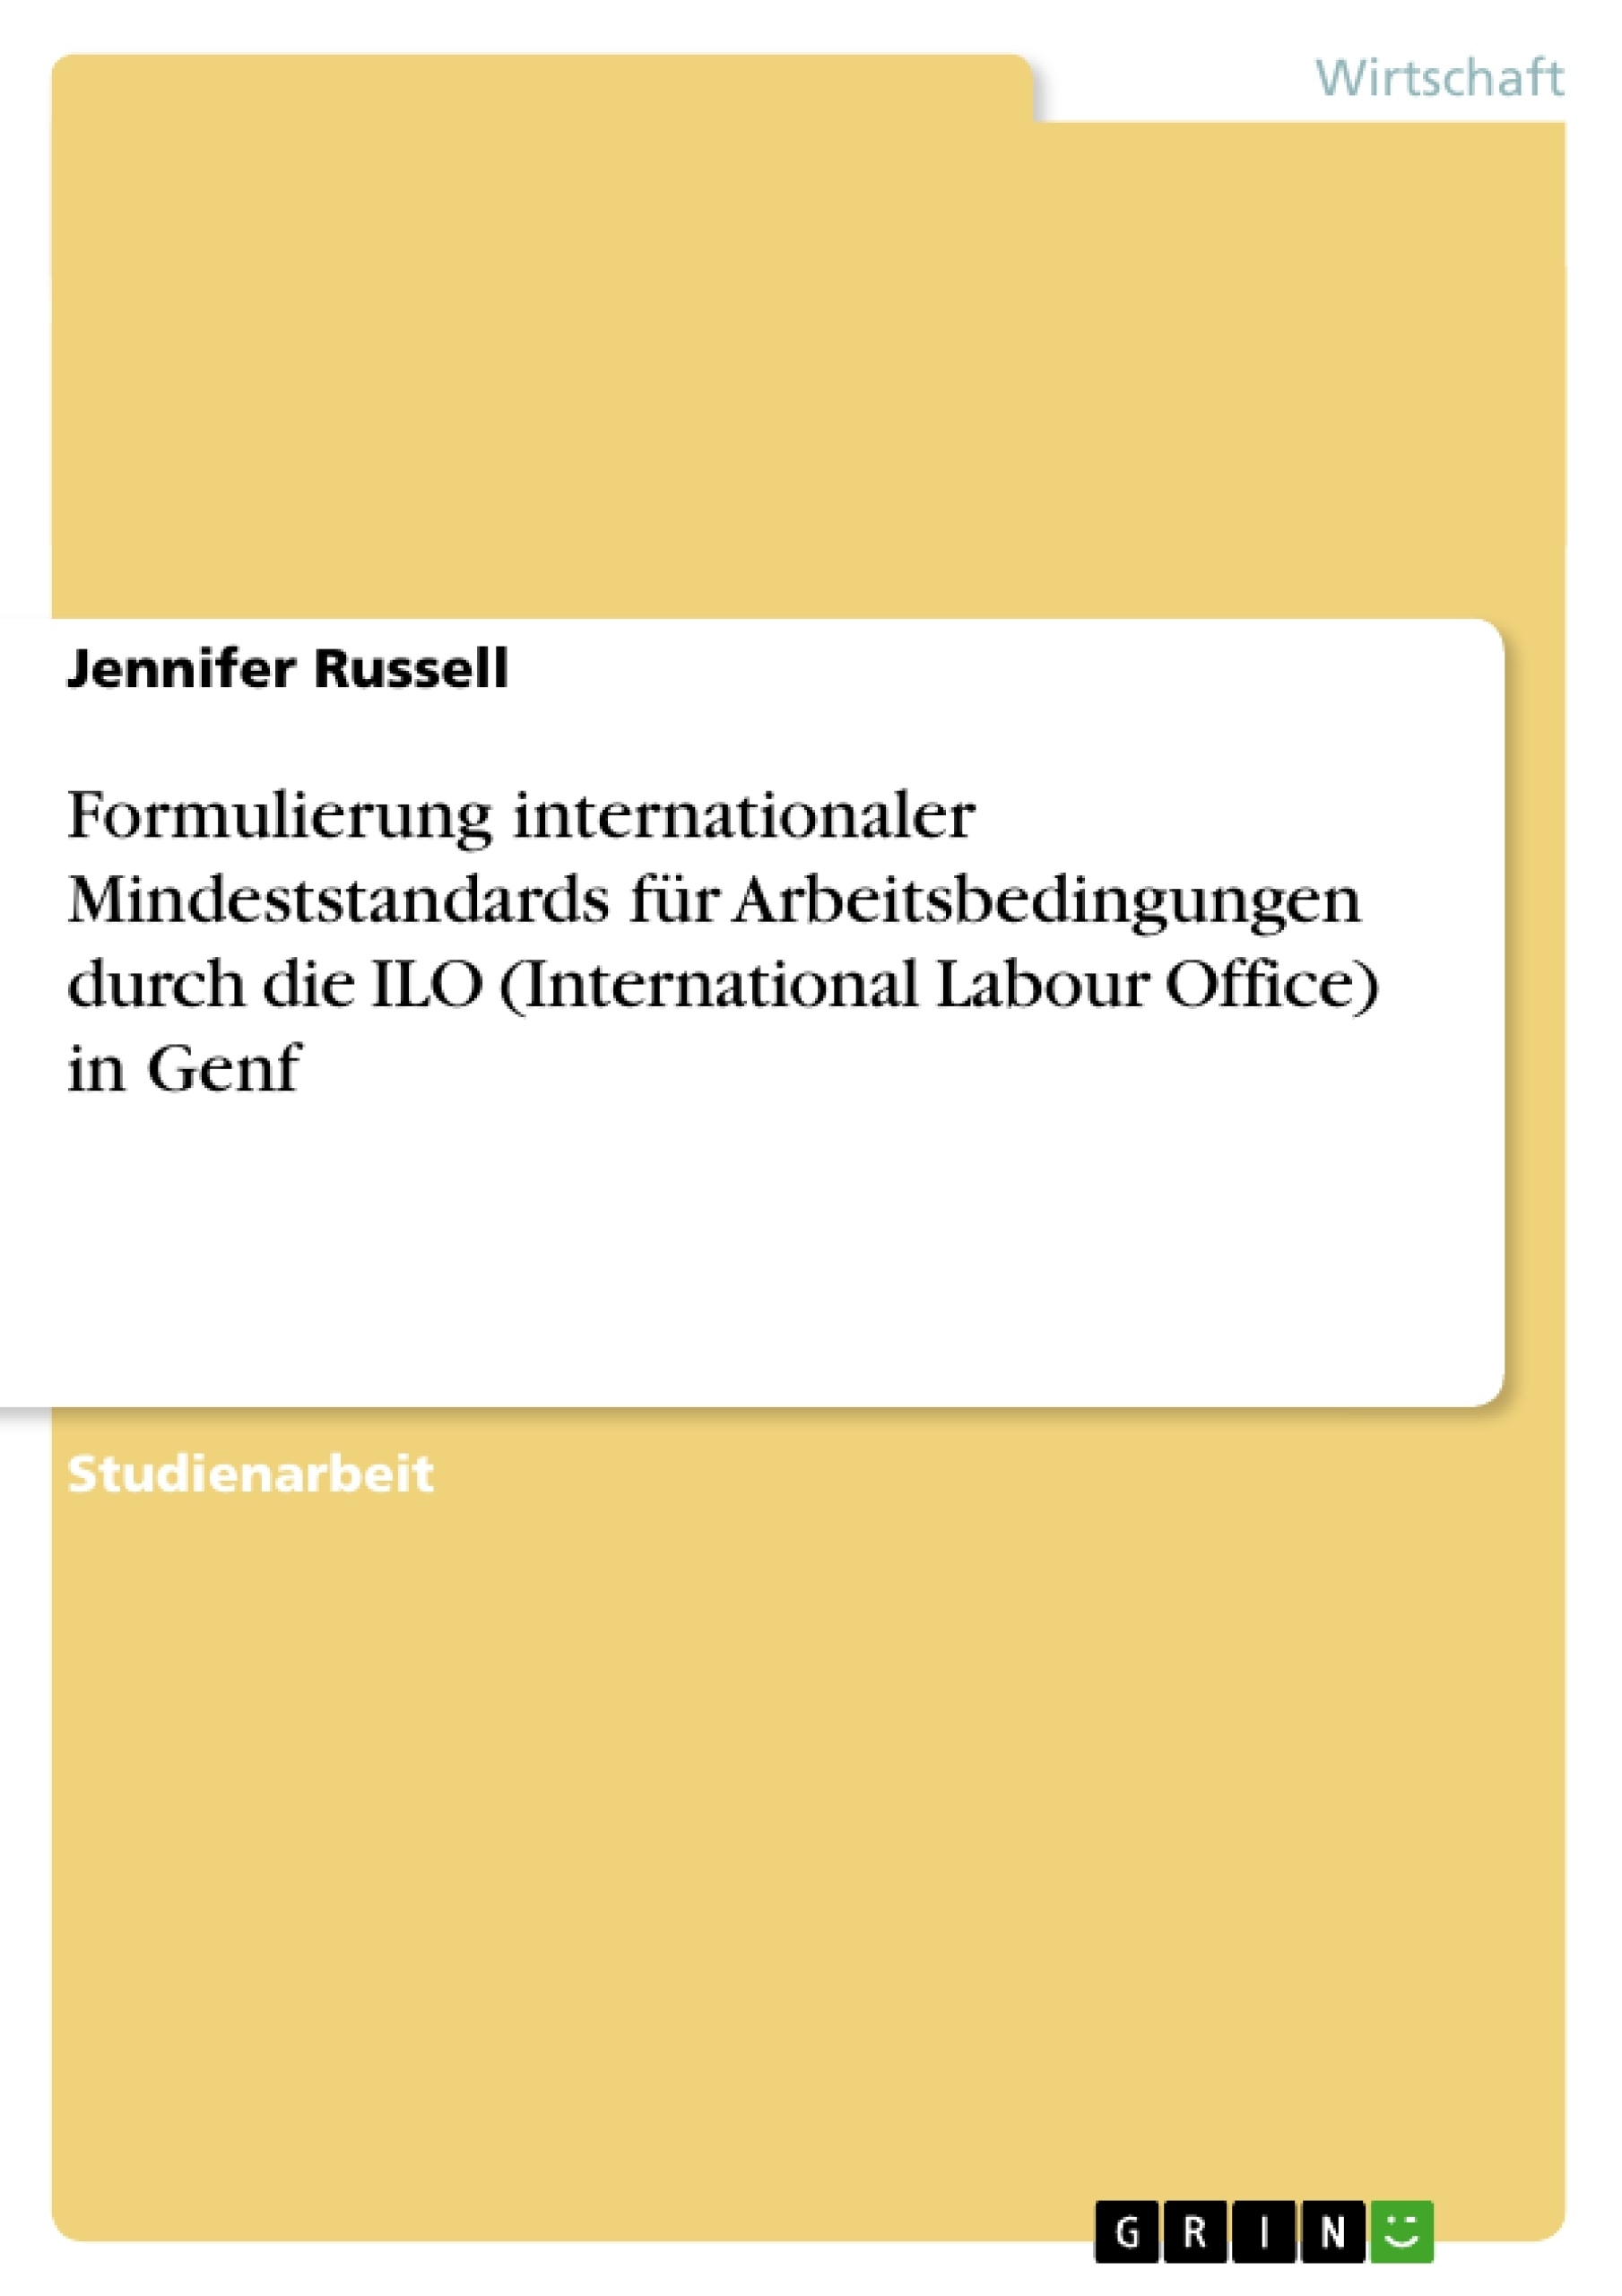 Titel: Formulierung internationaler Mindeststandards für Arbeitsbedingungen durch die ILO (International Labour Office) in Genf